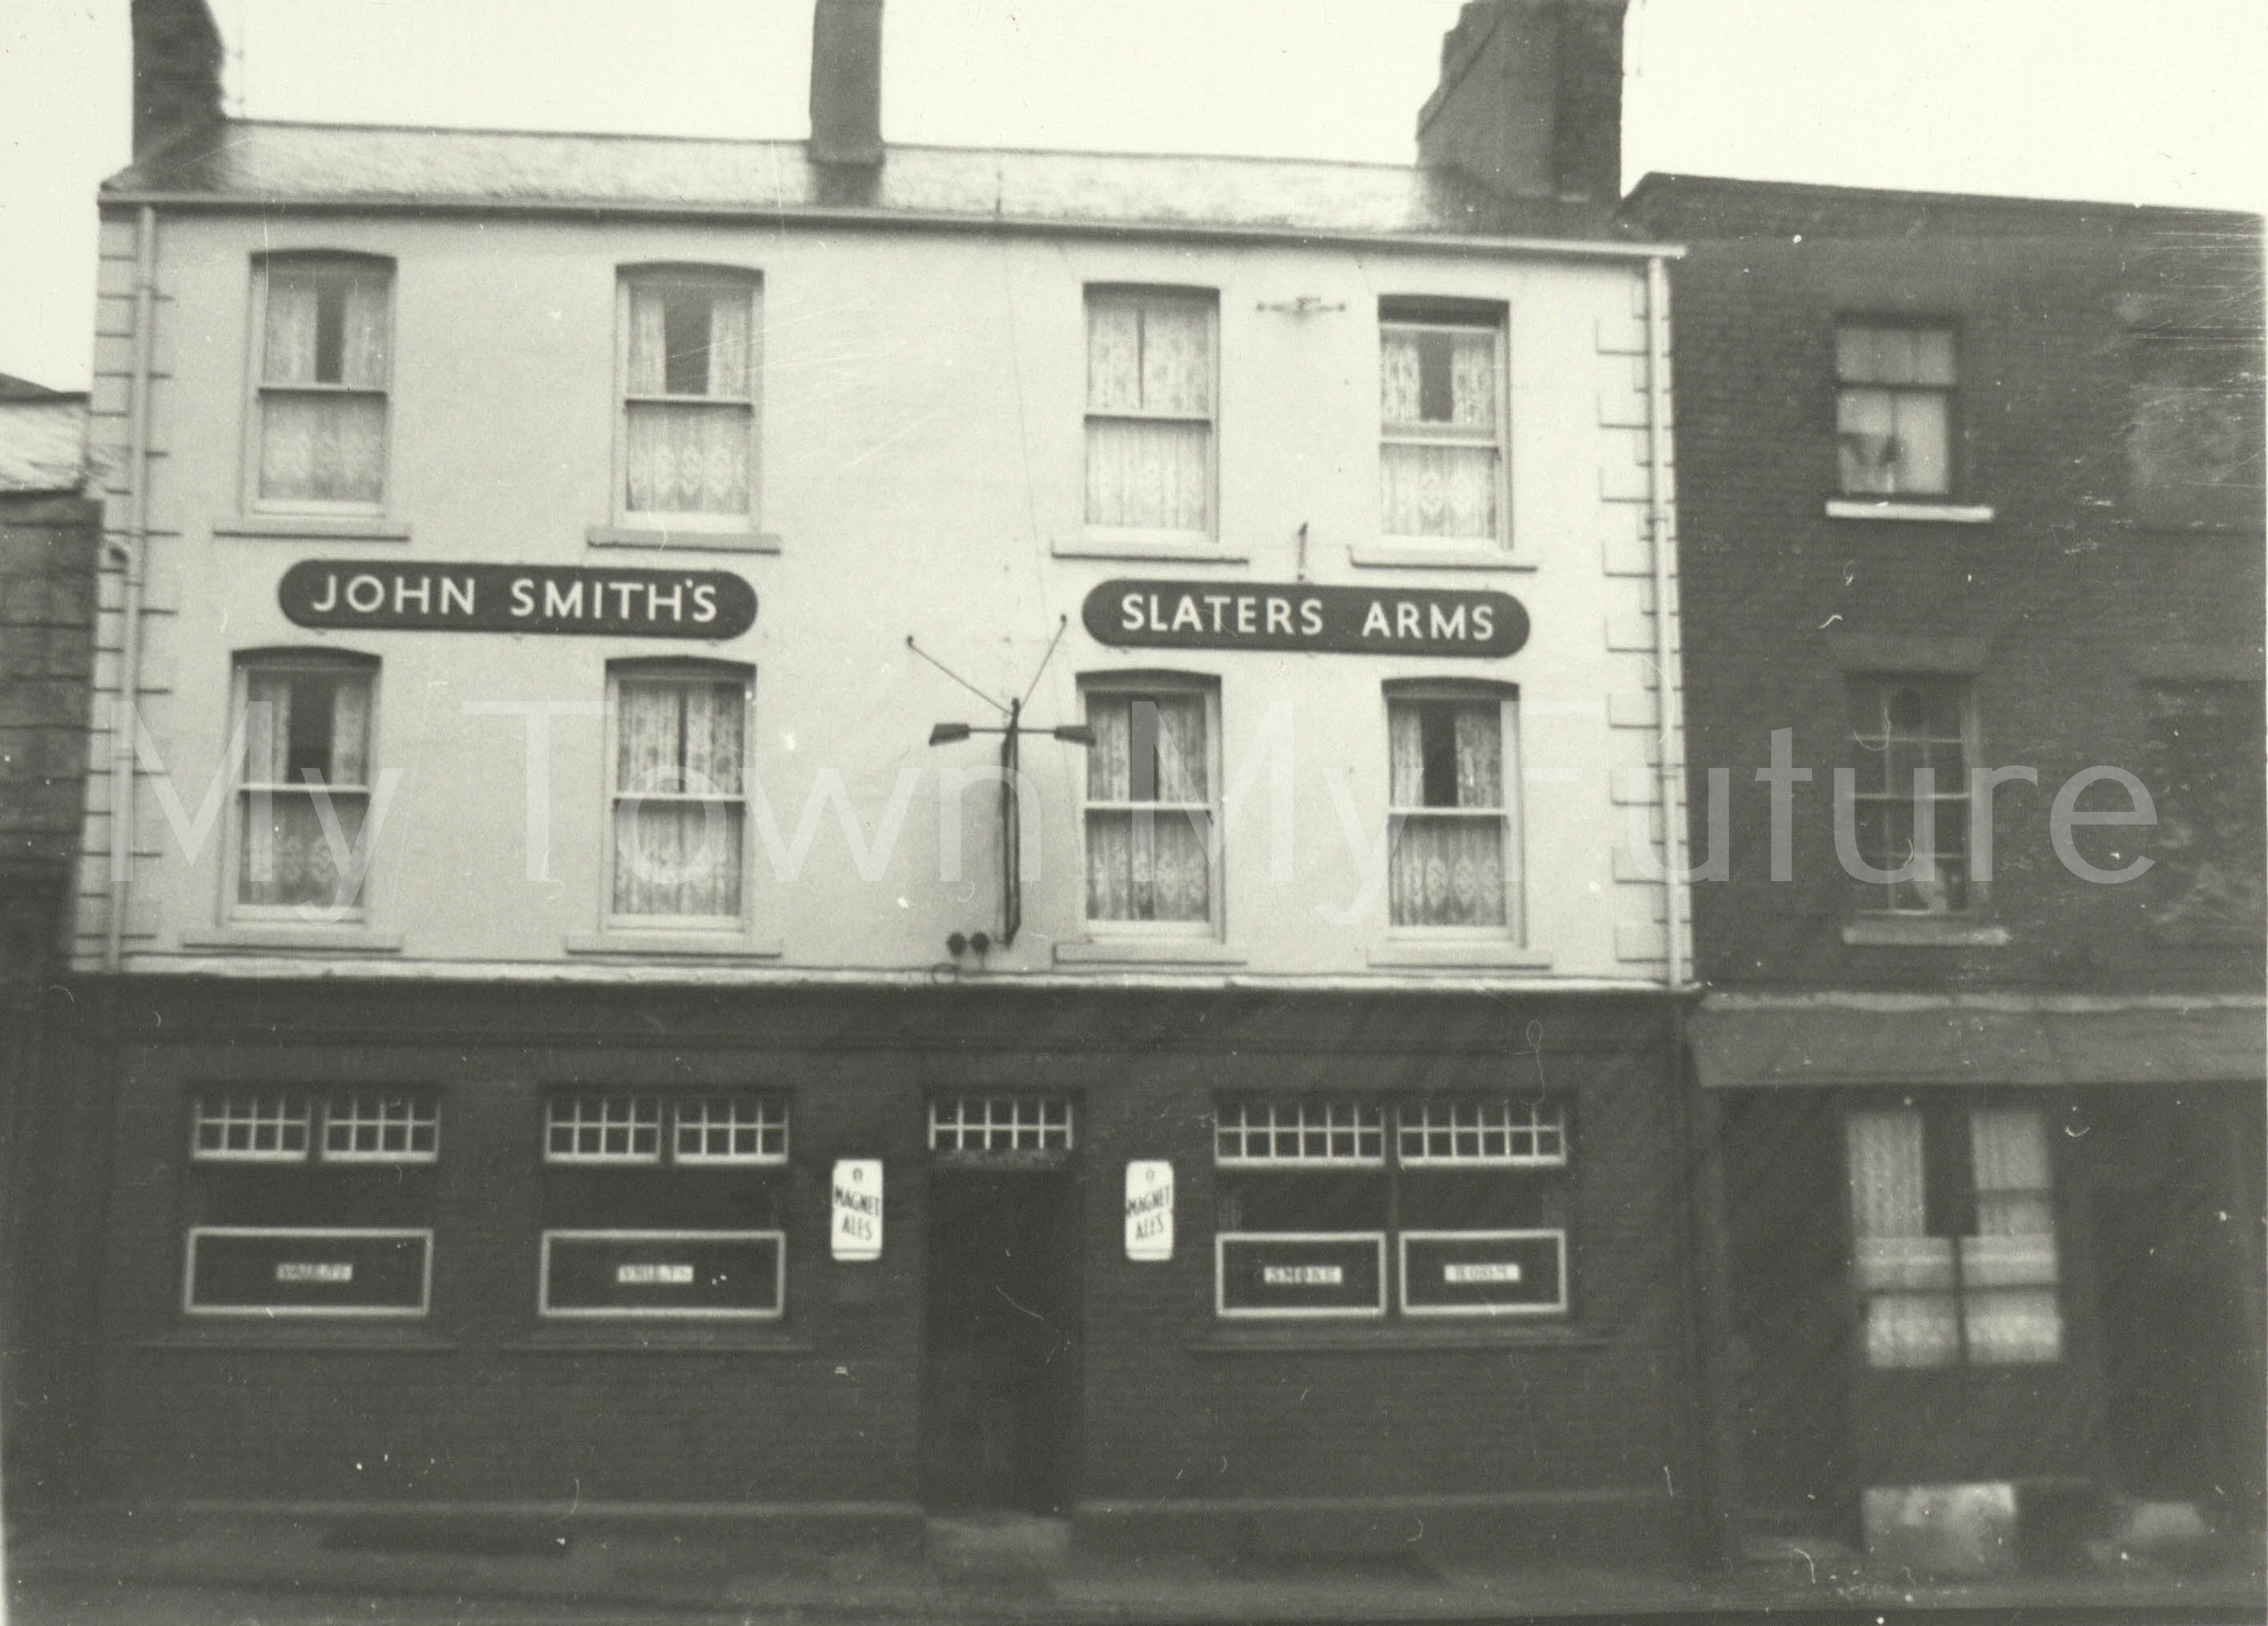 The Slaters Arms Hotel North Street St Hilda's 1960